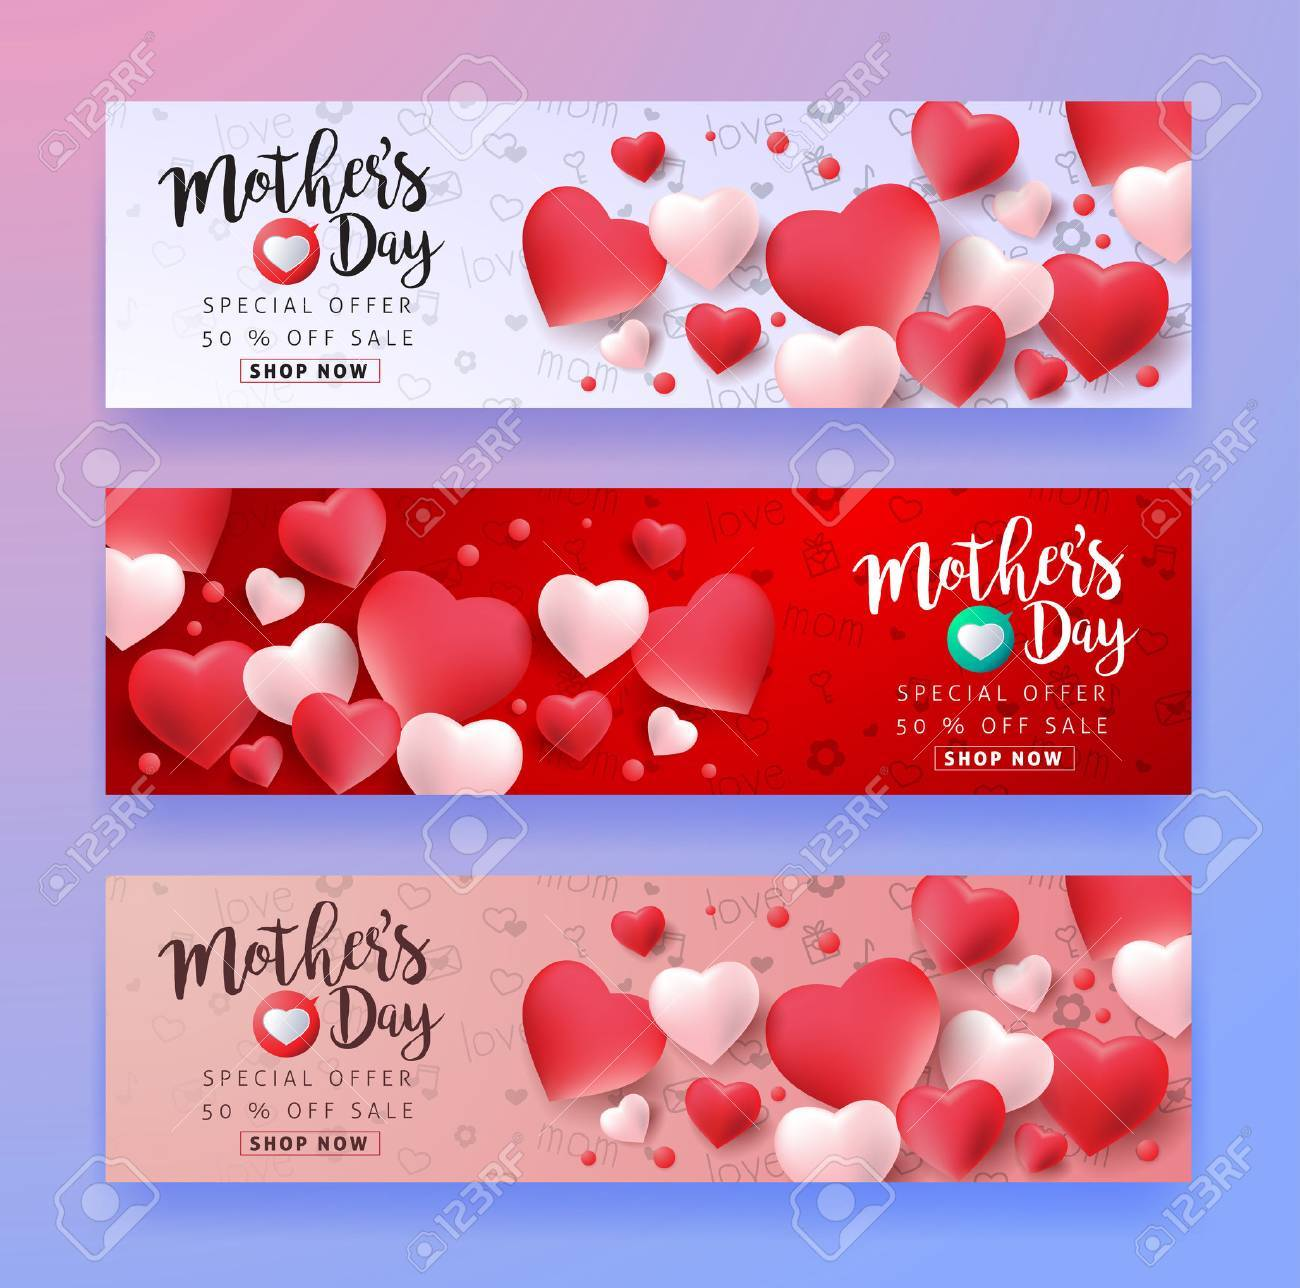 Mothers day sale background layout with Heart Shaped Balloons for banners,Wallpaper,flyers, invitation, posters, brochure, voucher discount.Vector illustration template. - 74274557